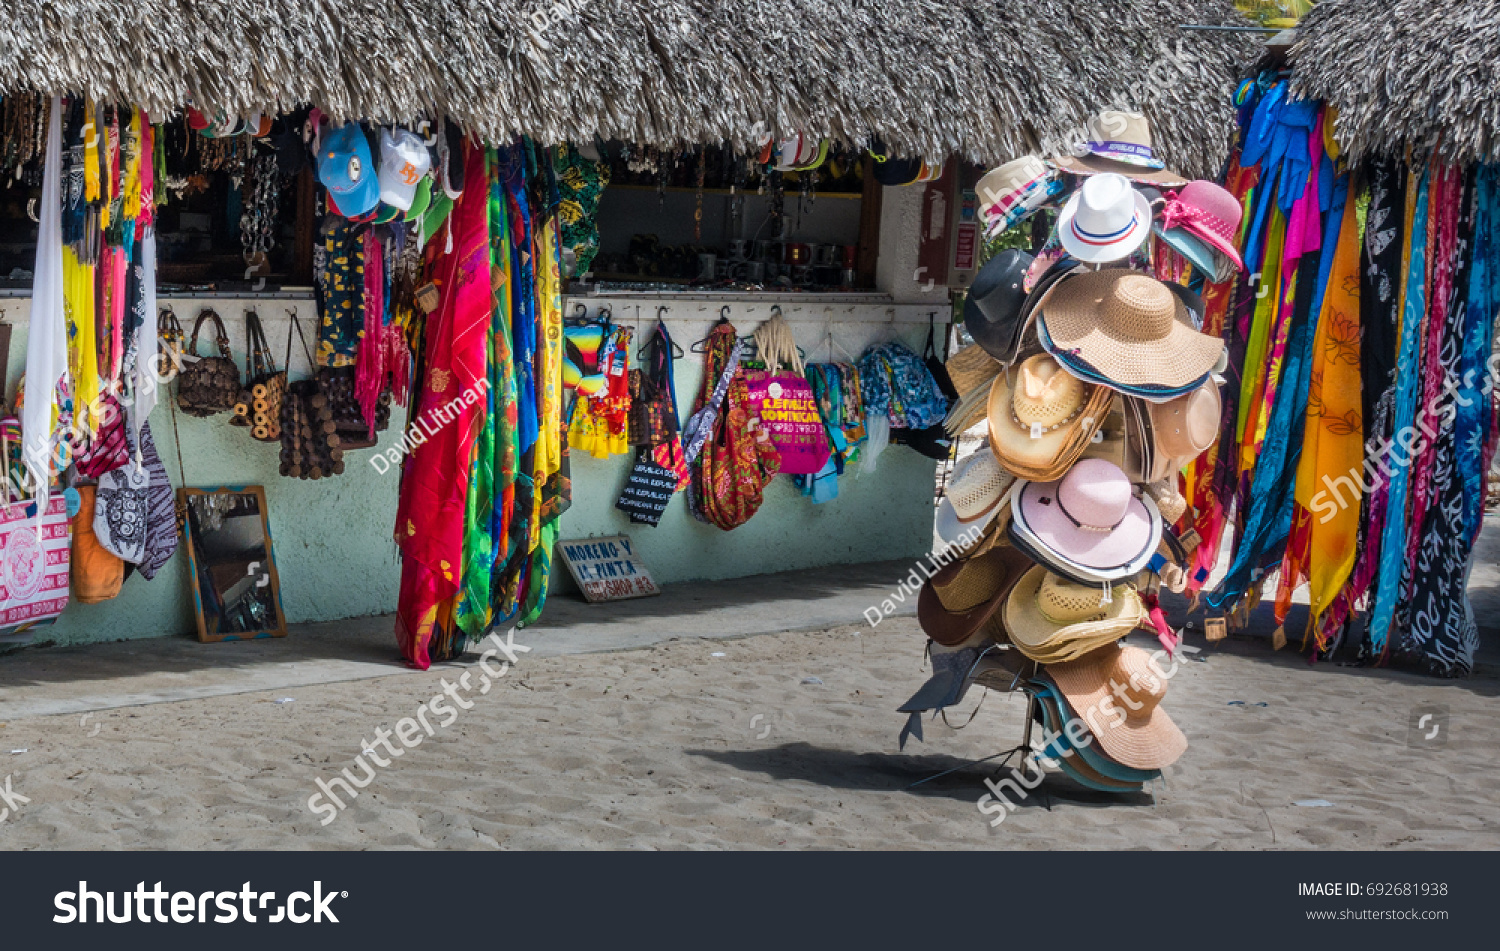 Isla Catalina, Dominican Republic - July 27, 2017: Colorful garments and hats on display in front of beach side gift shops thatched huts in a small village on Catalina Island in the Caribbean Sea.